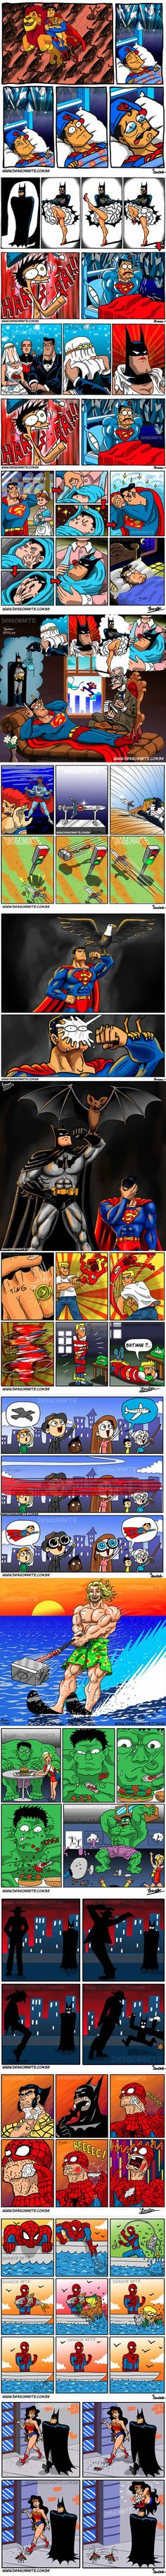 The Funniest Superhero Comics Collection (Part 2) asi estoy yo, como la amazona que lucha x la justicia y la verdad... no x lo mamá dolores, sino por las mugres cucarachas!!!